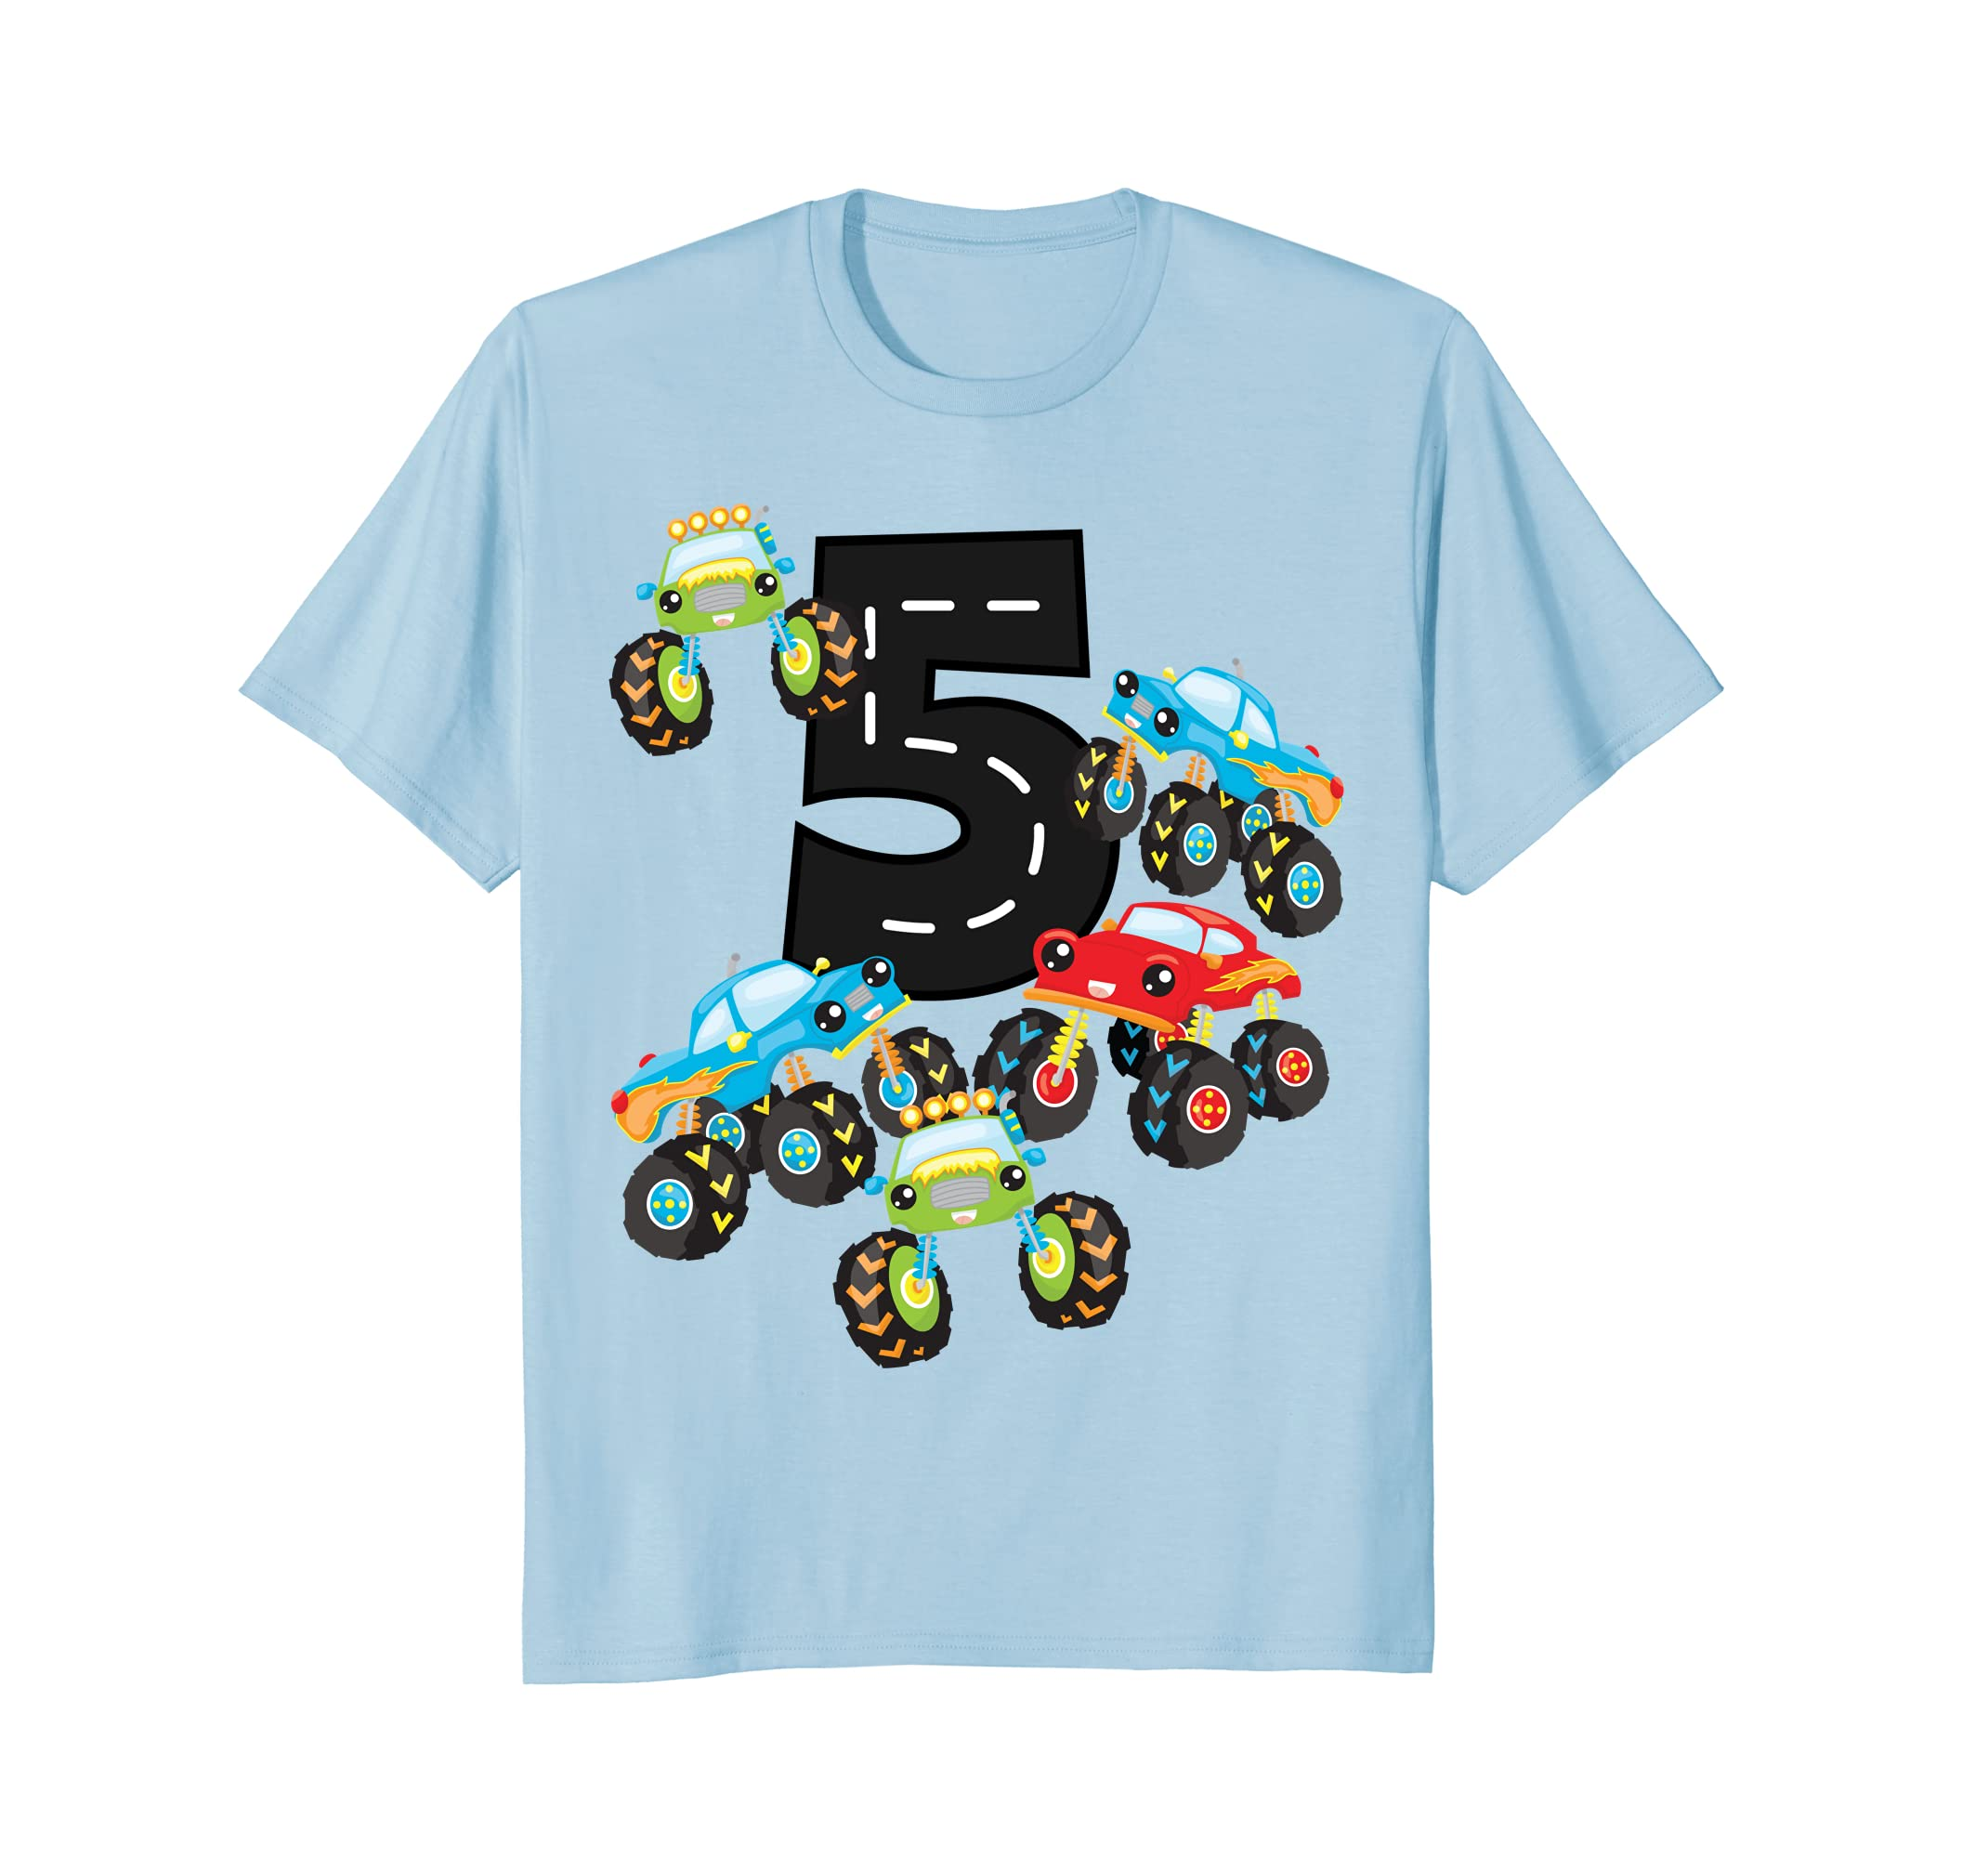 Amazon Birthday Shirt For Boys 5 Five Monster Trucks Boy Clothing